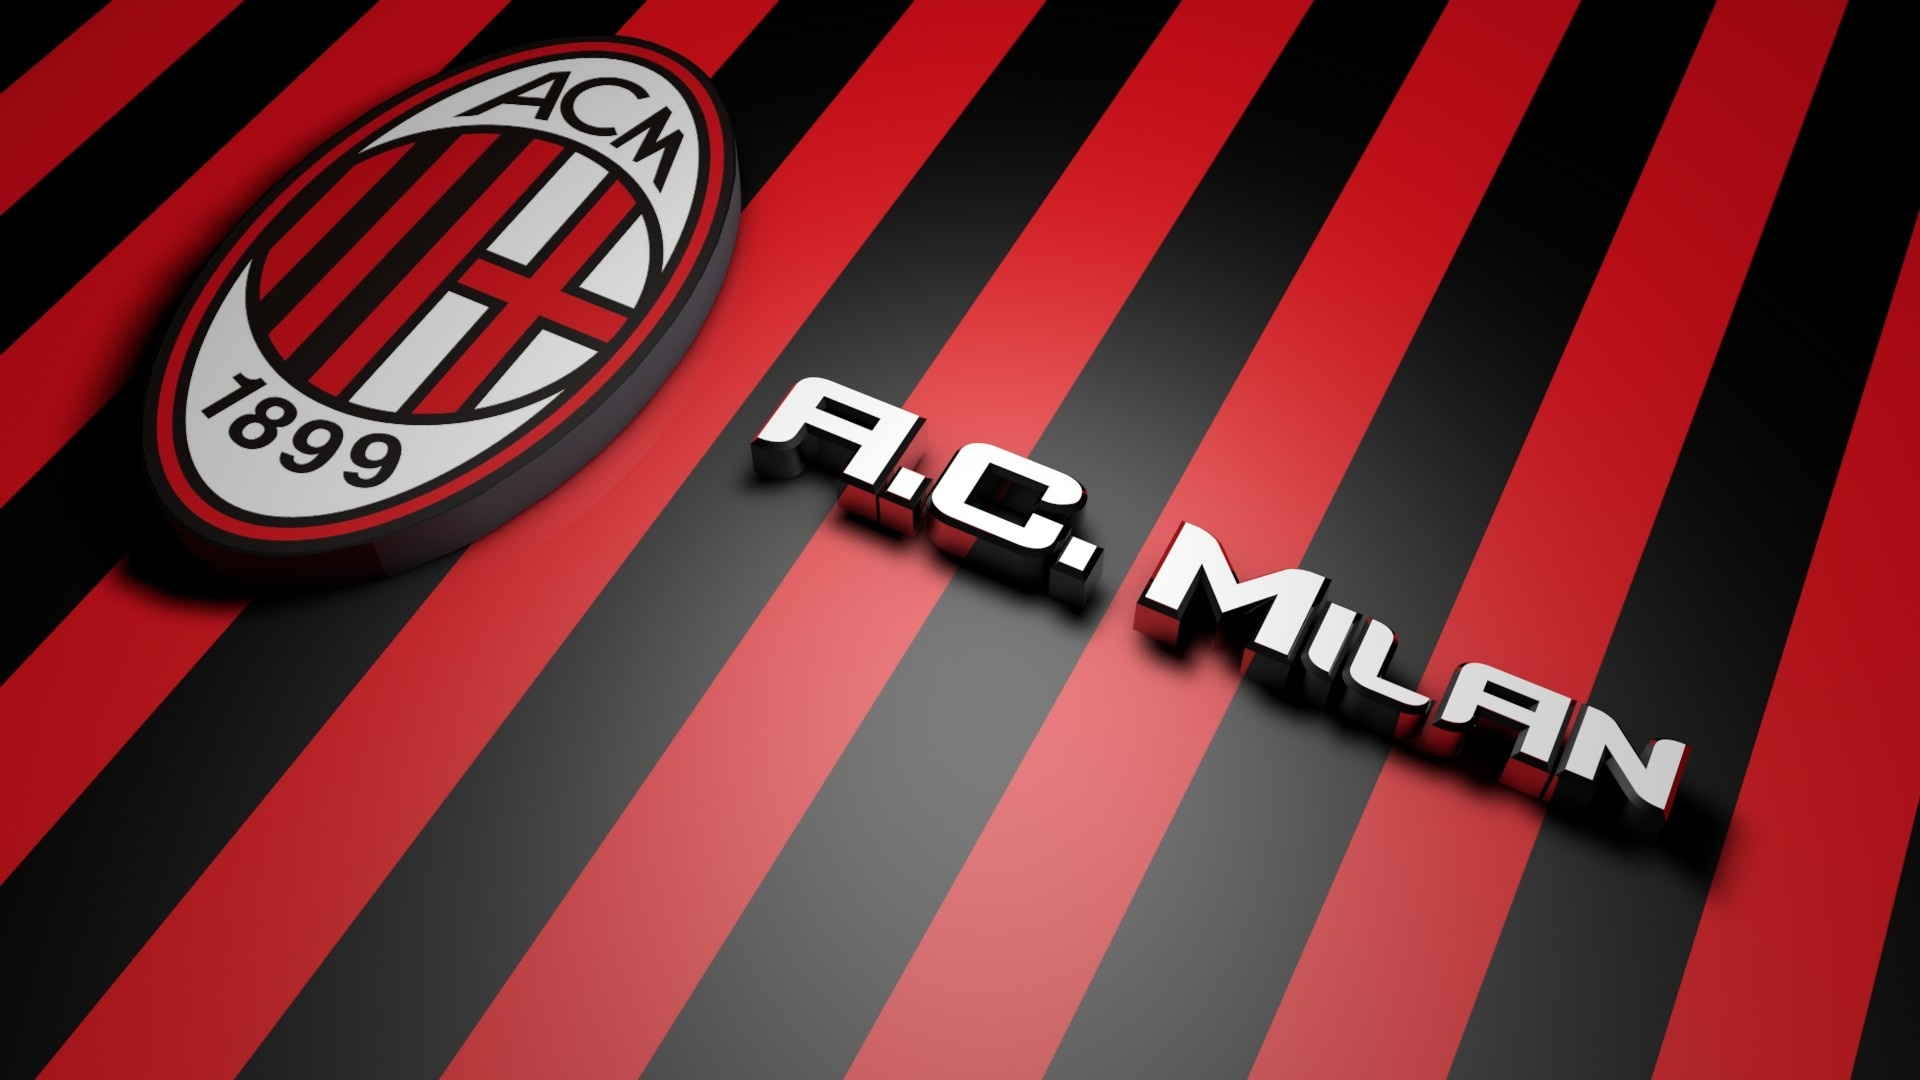 48 ] Logo Ac Milan Wallpaper 2015 On WallpaperSafari